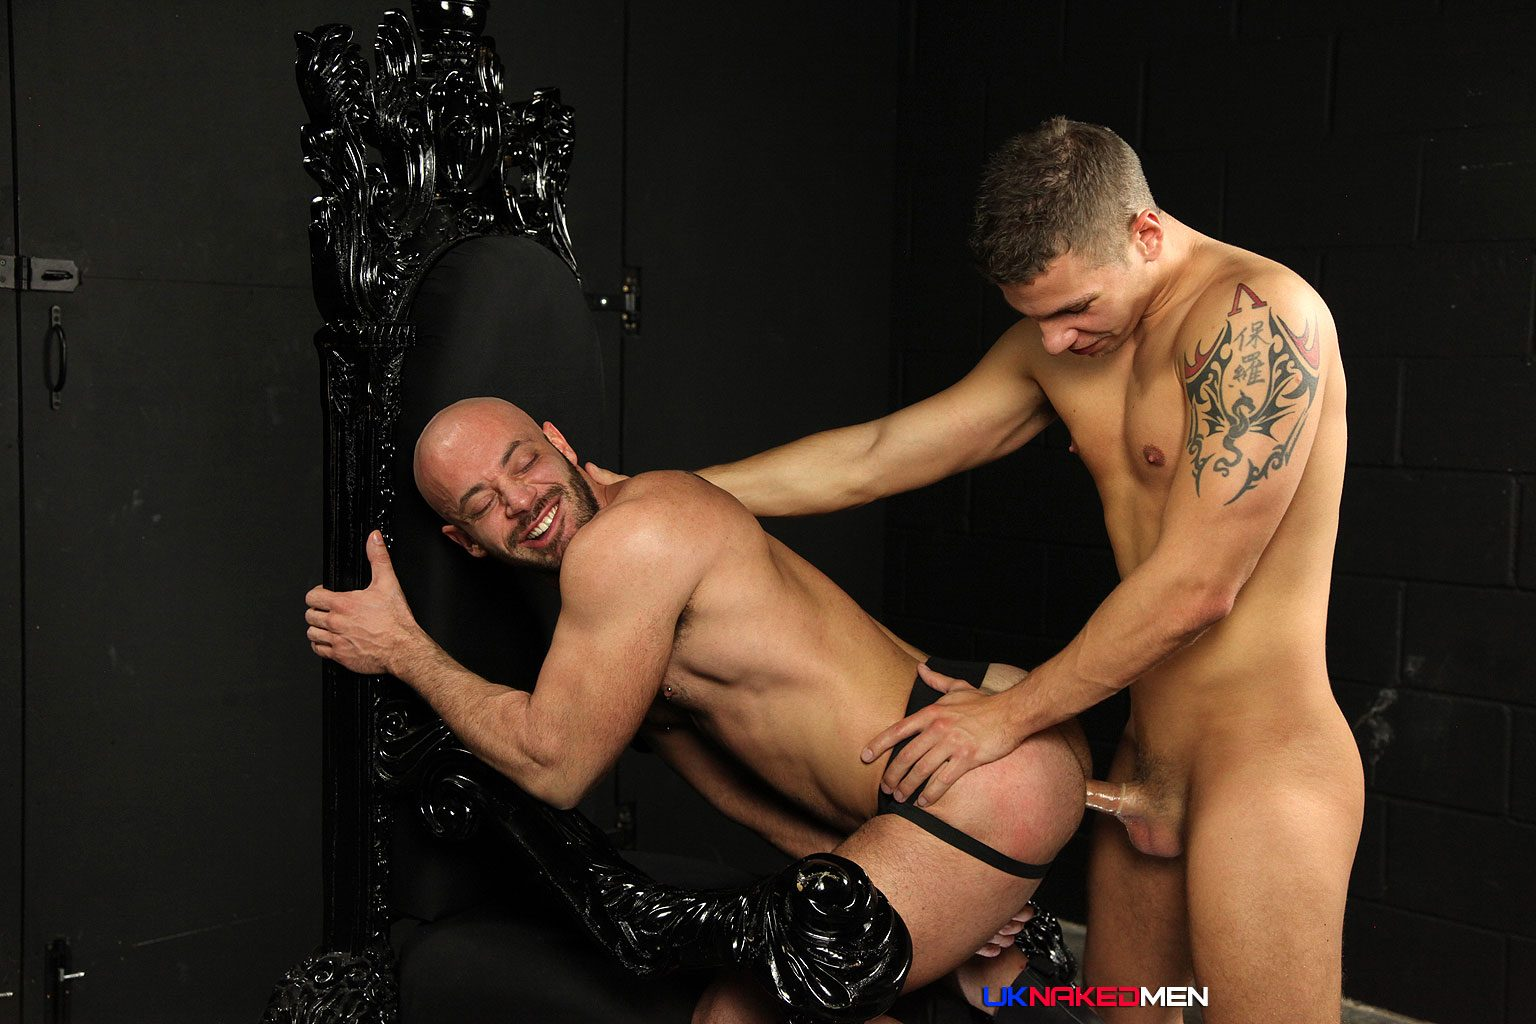 best of Fetish uknakedmen Arse